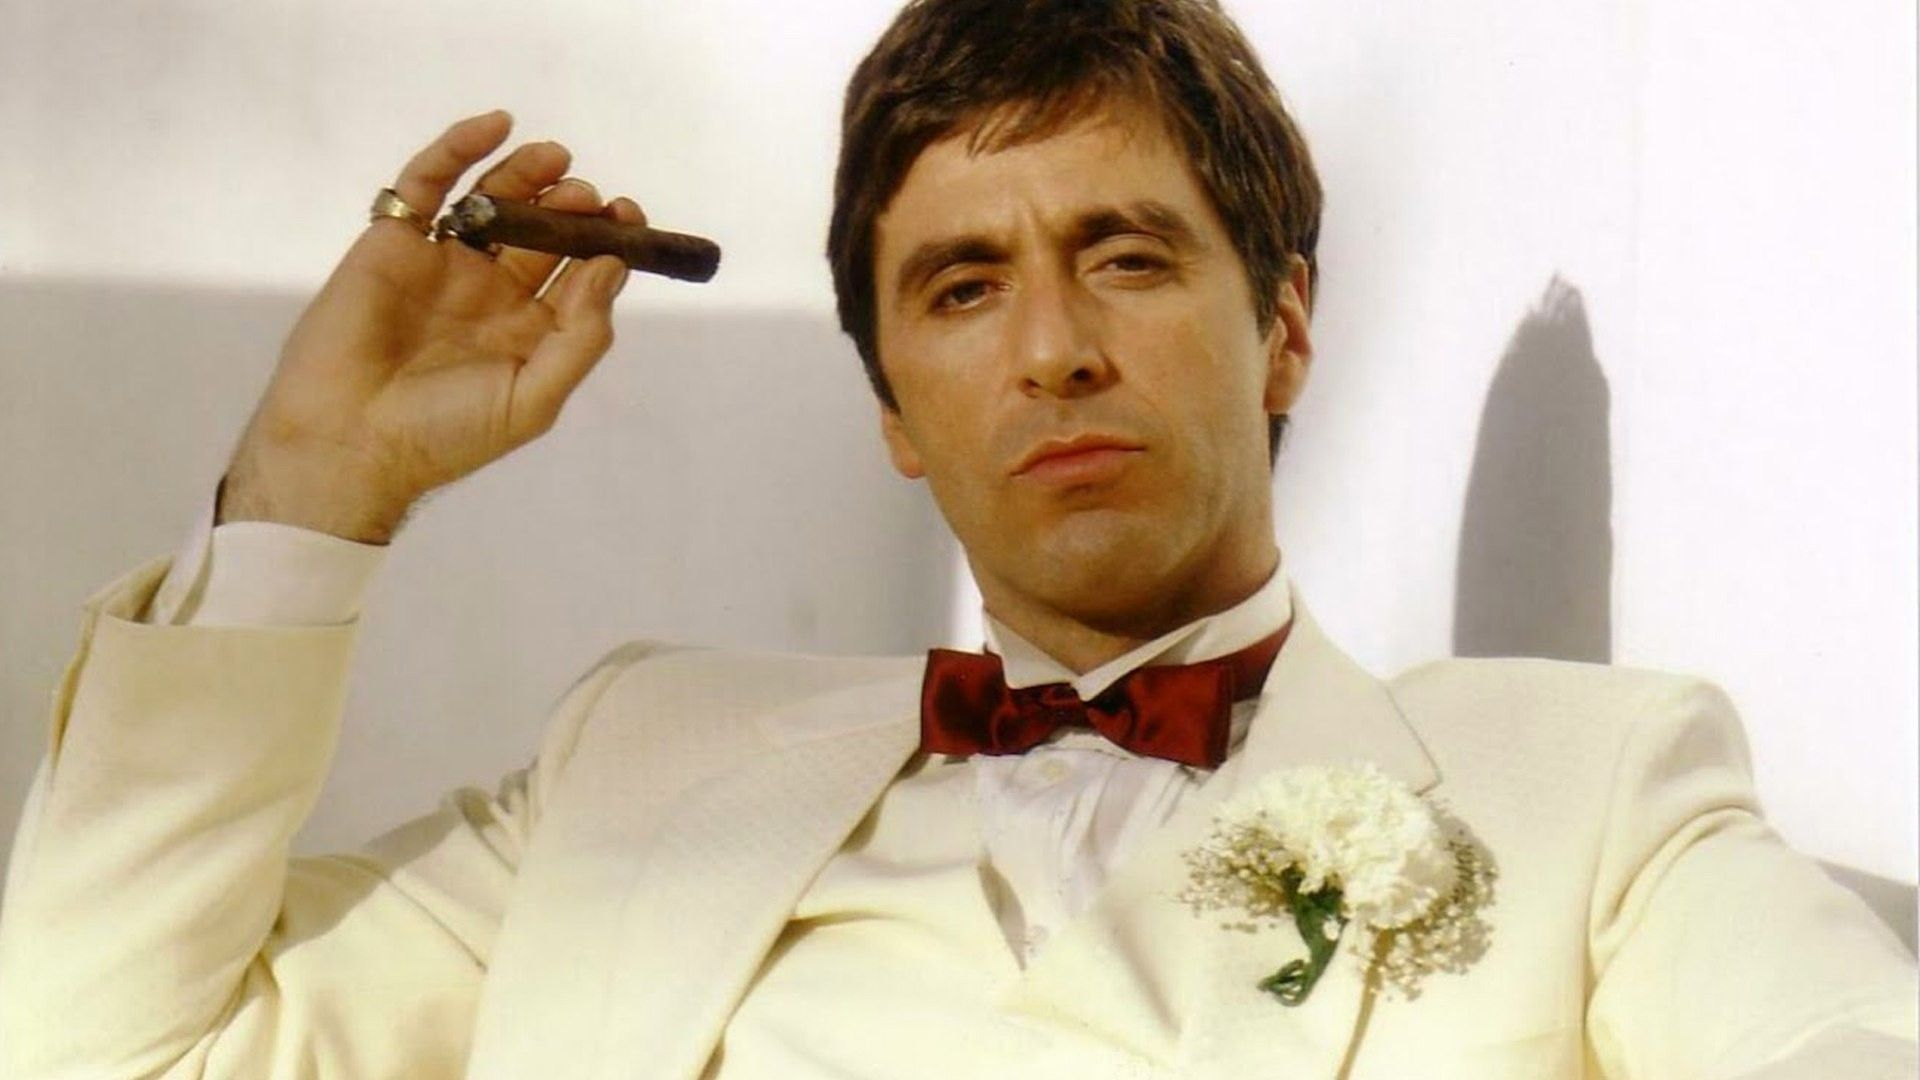 1920x1080 Top 10 Tony Montana Wallpapers HD - iPhone2Lovely